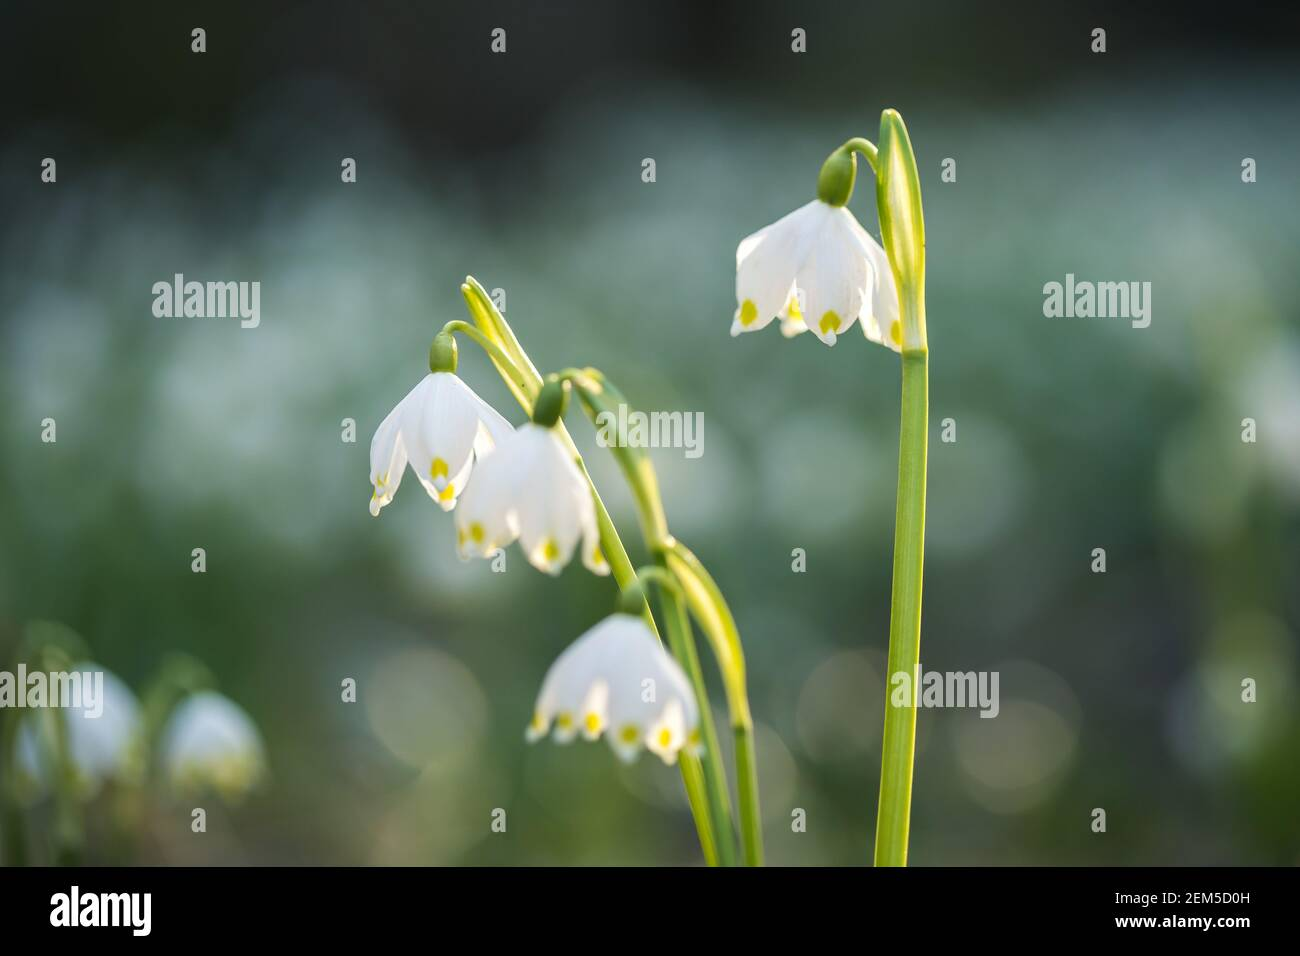 Leucojum vernum or spring snowflake - blooming white flowers in early spring in the forest, closeup macro picture. Stock Photo